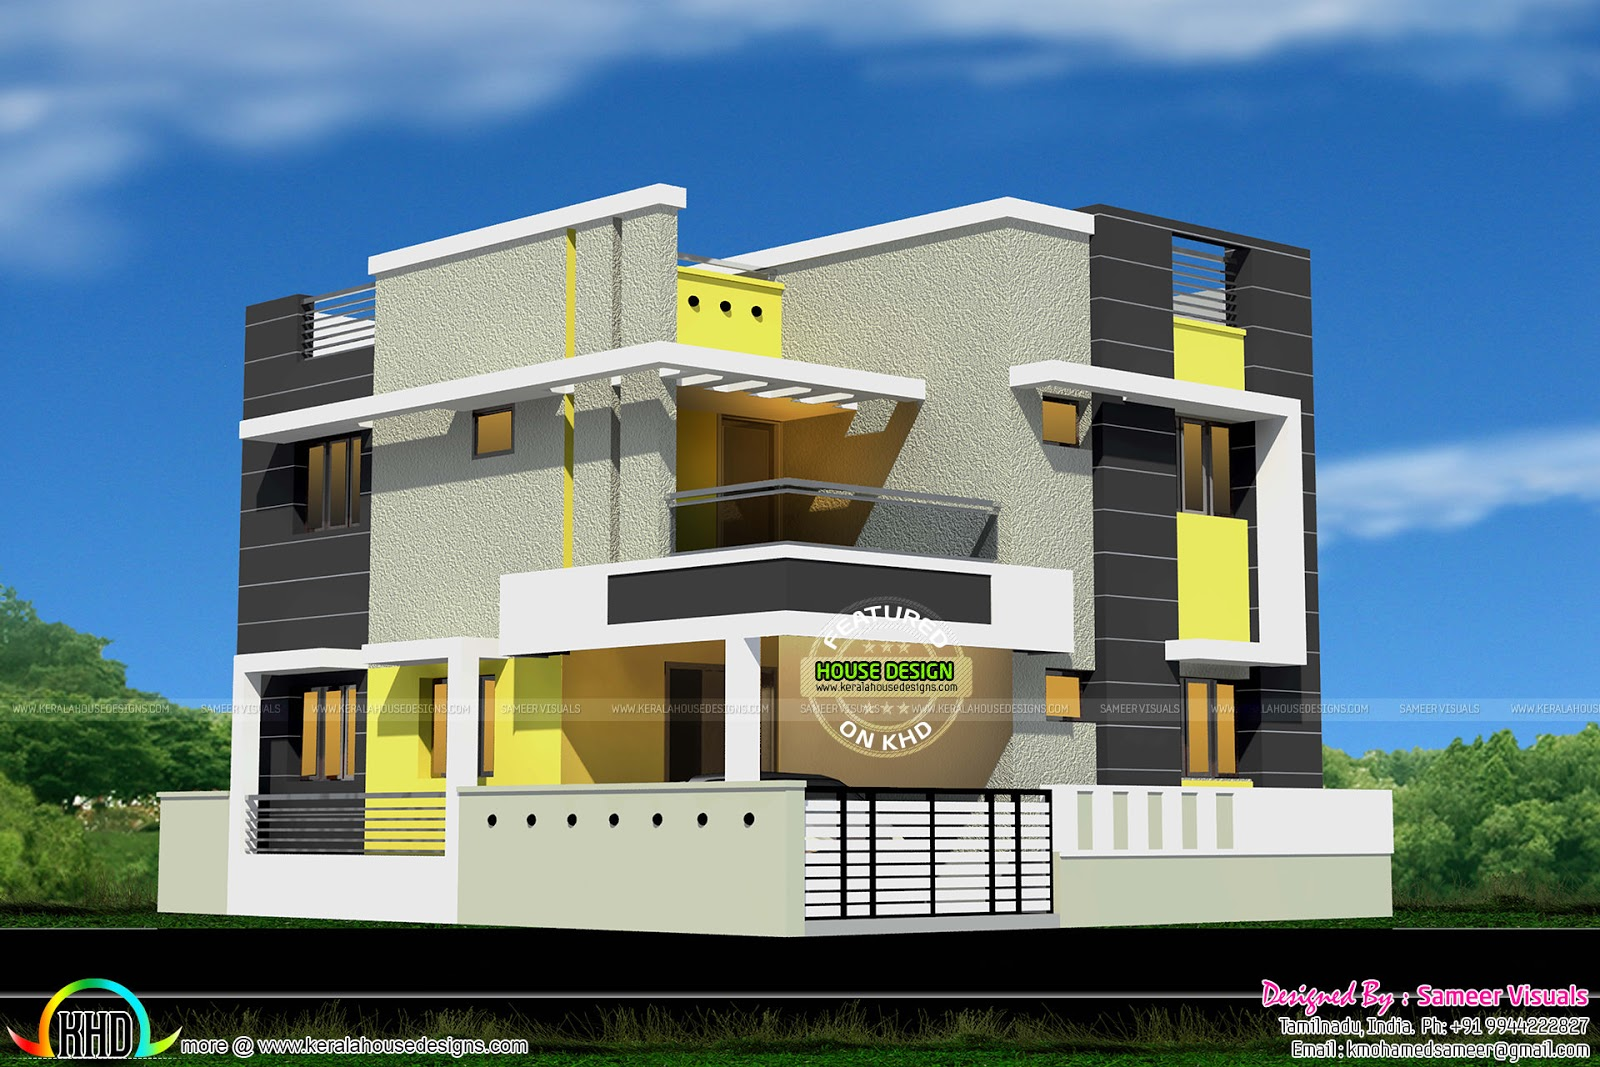 New modern house design kerala home design and floor plans New model contemporary house